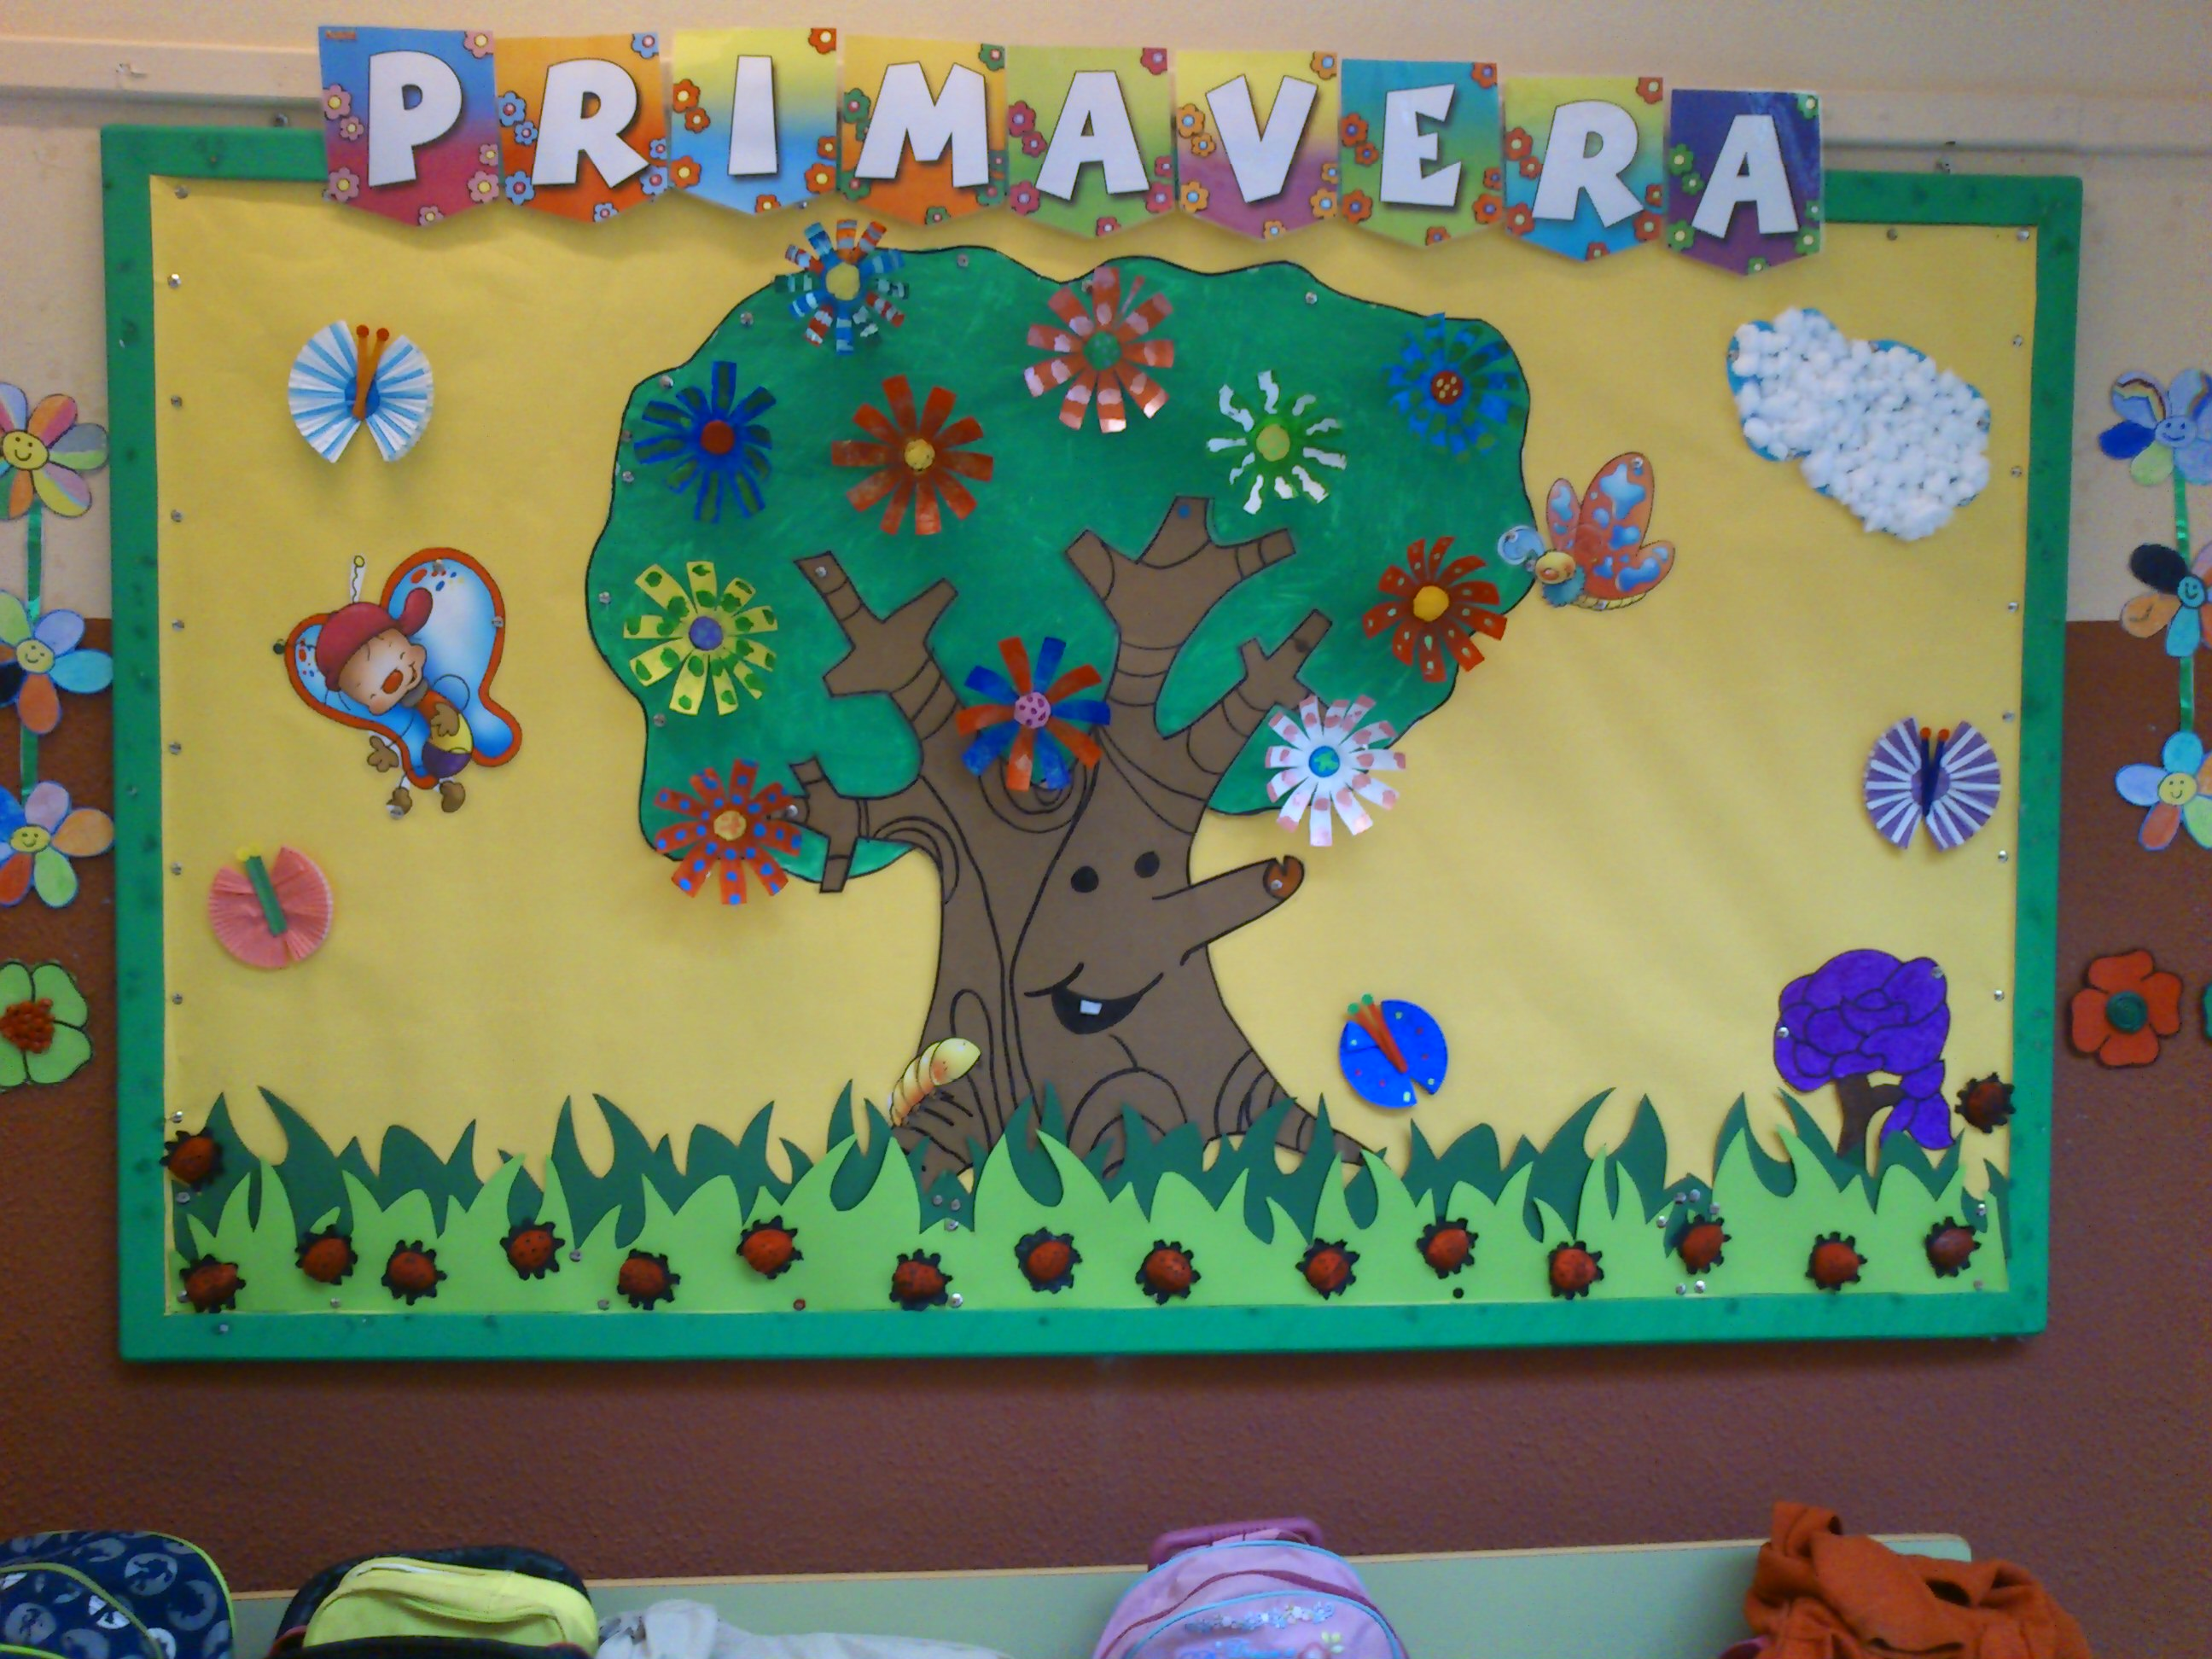 Murales primavera 13 imagenes educativas for Murales infantiles para pared